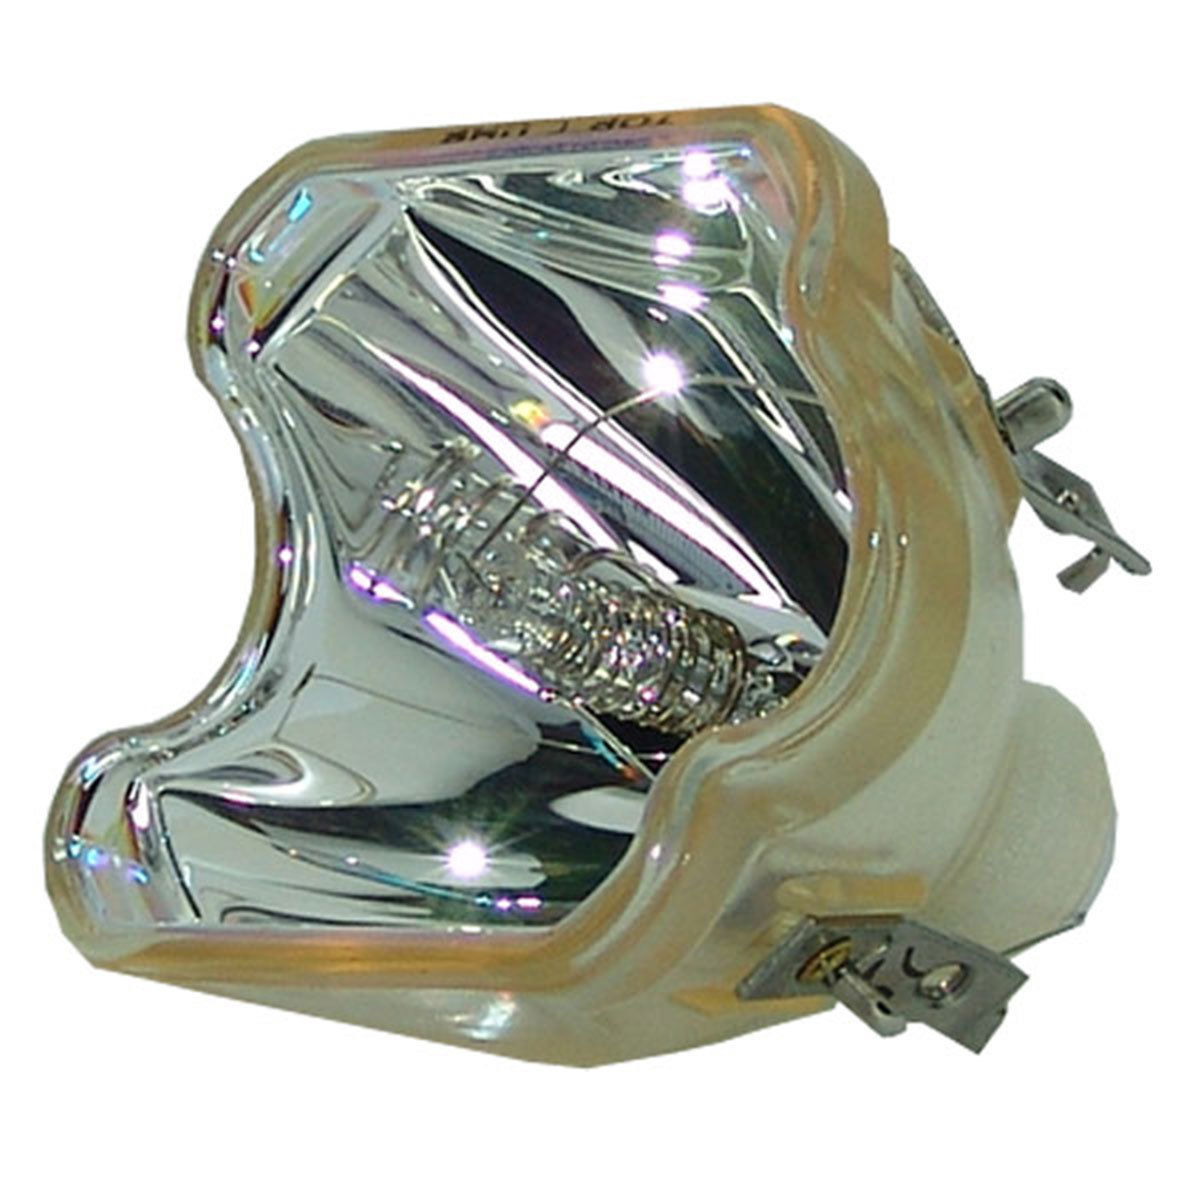 DT00731 DT-00731 for HITACHI CP-S240 CP-S245 CP-X250 CP-X255 ED-S84 ED-X8250 ED-X8255 Projector Lamp Bulb without Housing<br>